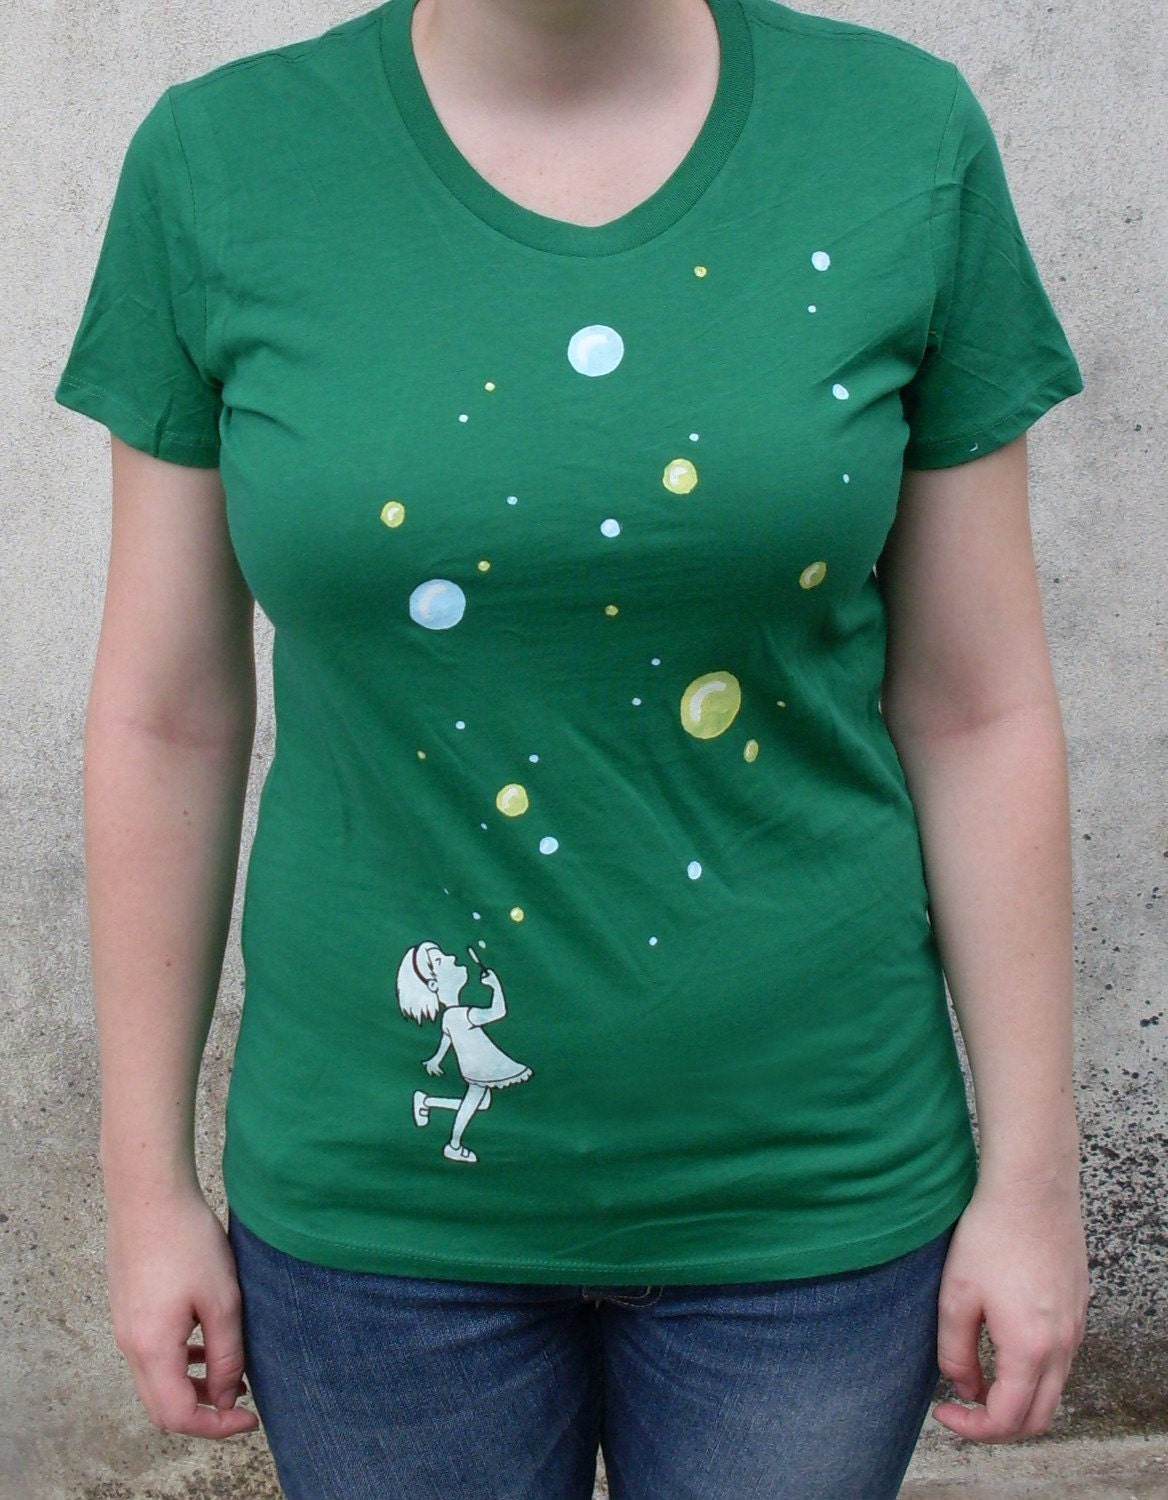 Bubbles - HAND PAINTED T-SHIRT